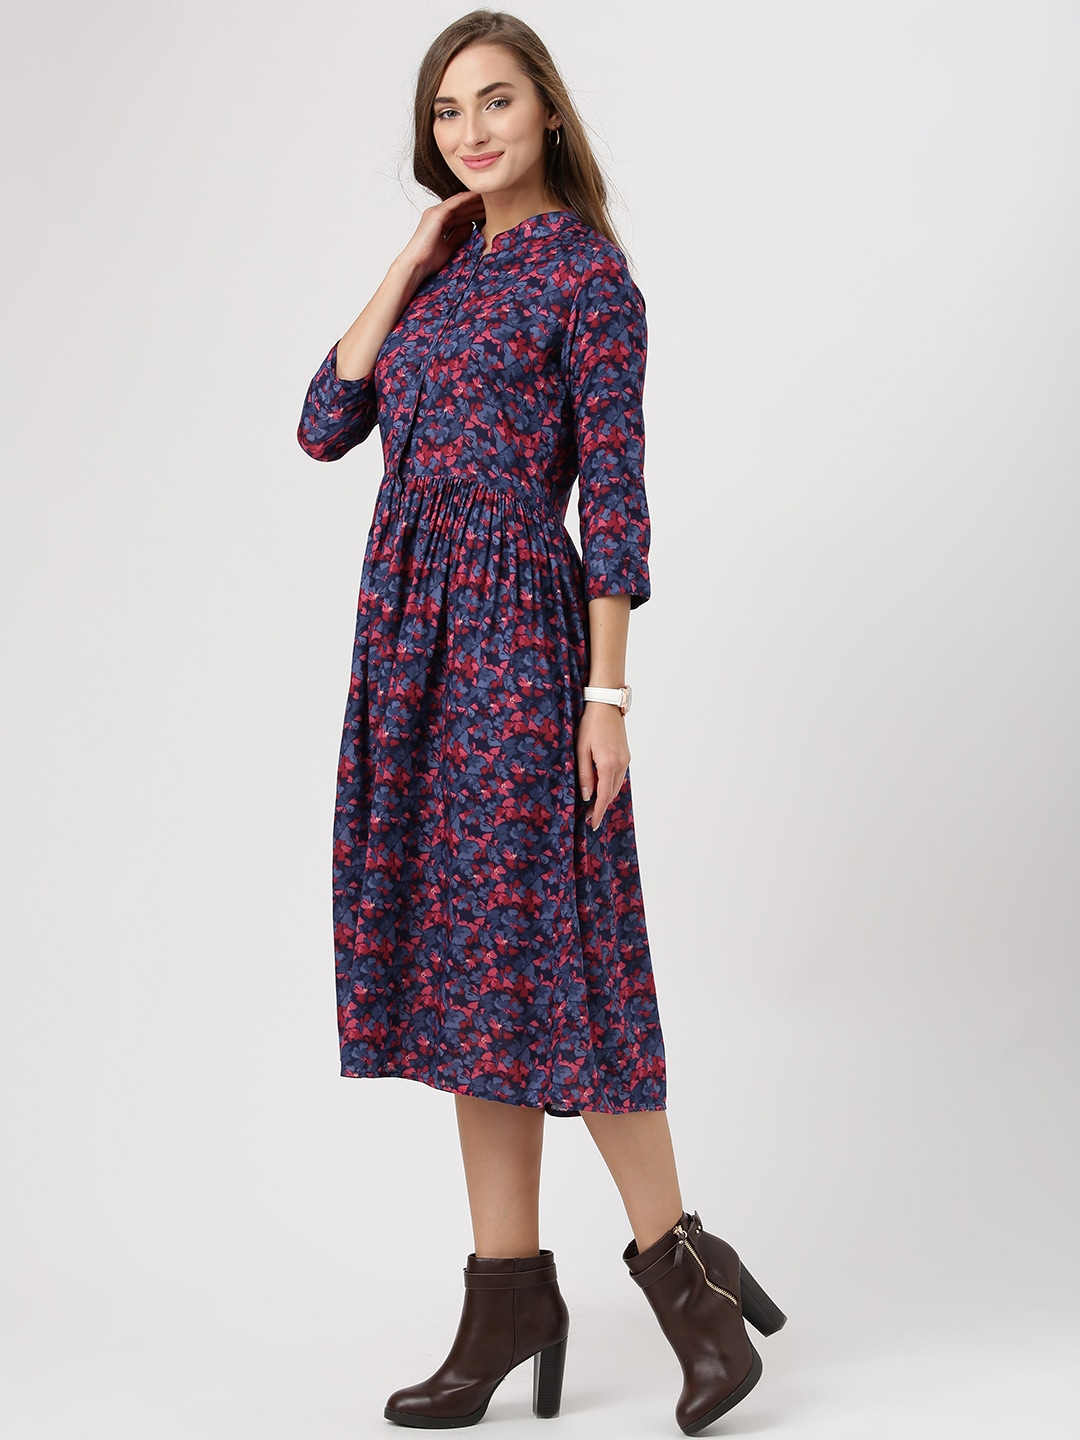 Dresses For Women - Buy Women Dresses Online - Myntra